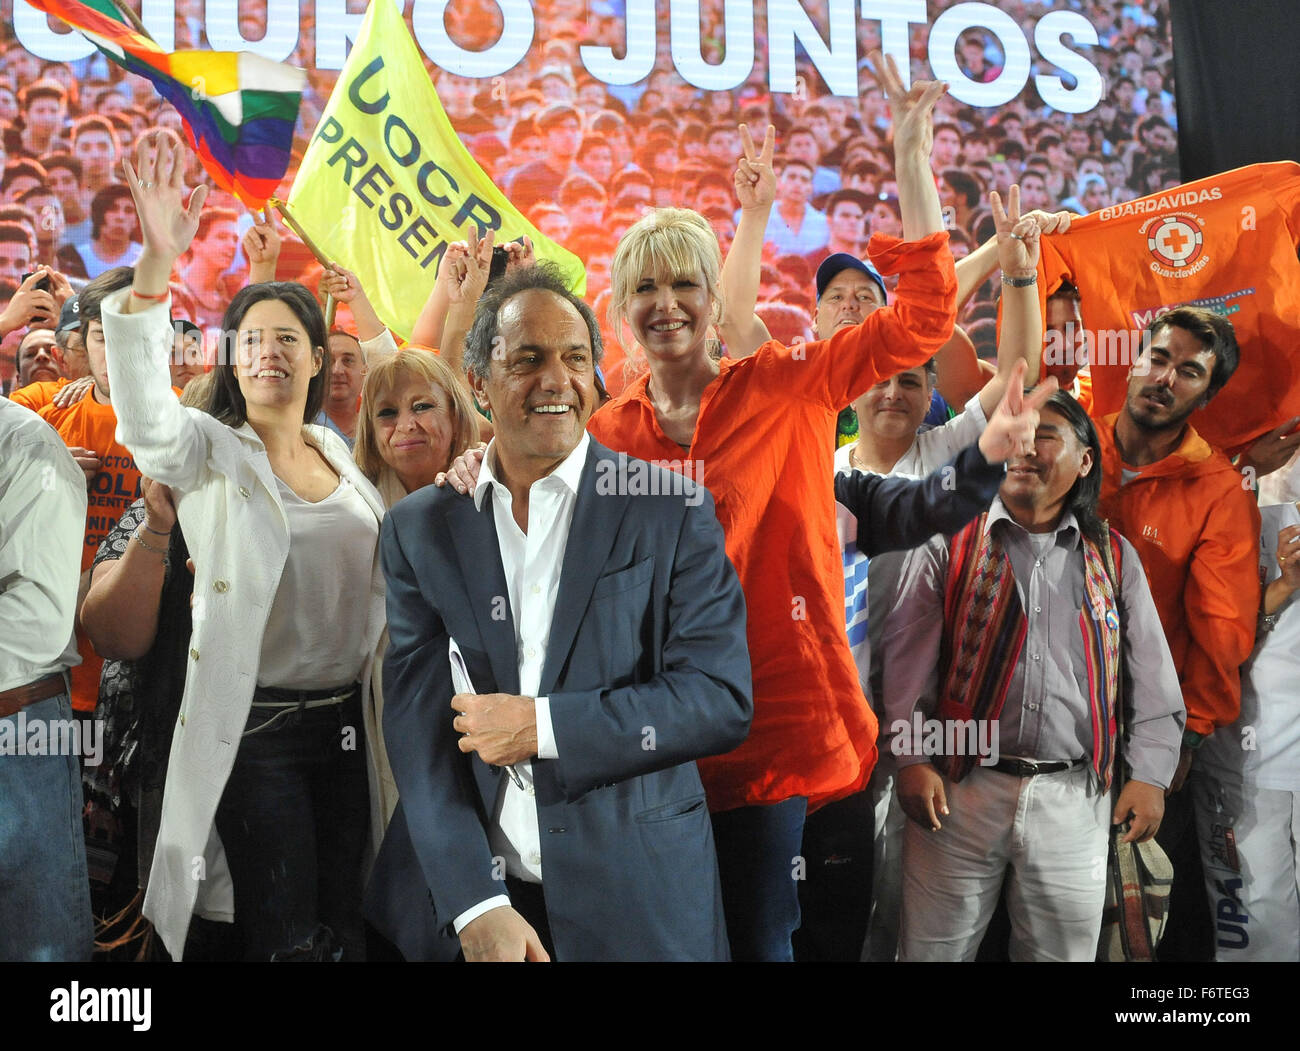 Mar Del Plata. 19th Nov, 2015. Daniel Scioli (C), presidential candidate of Argentina's ruling Front for Victory - Stock Image